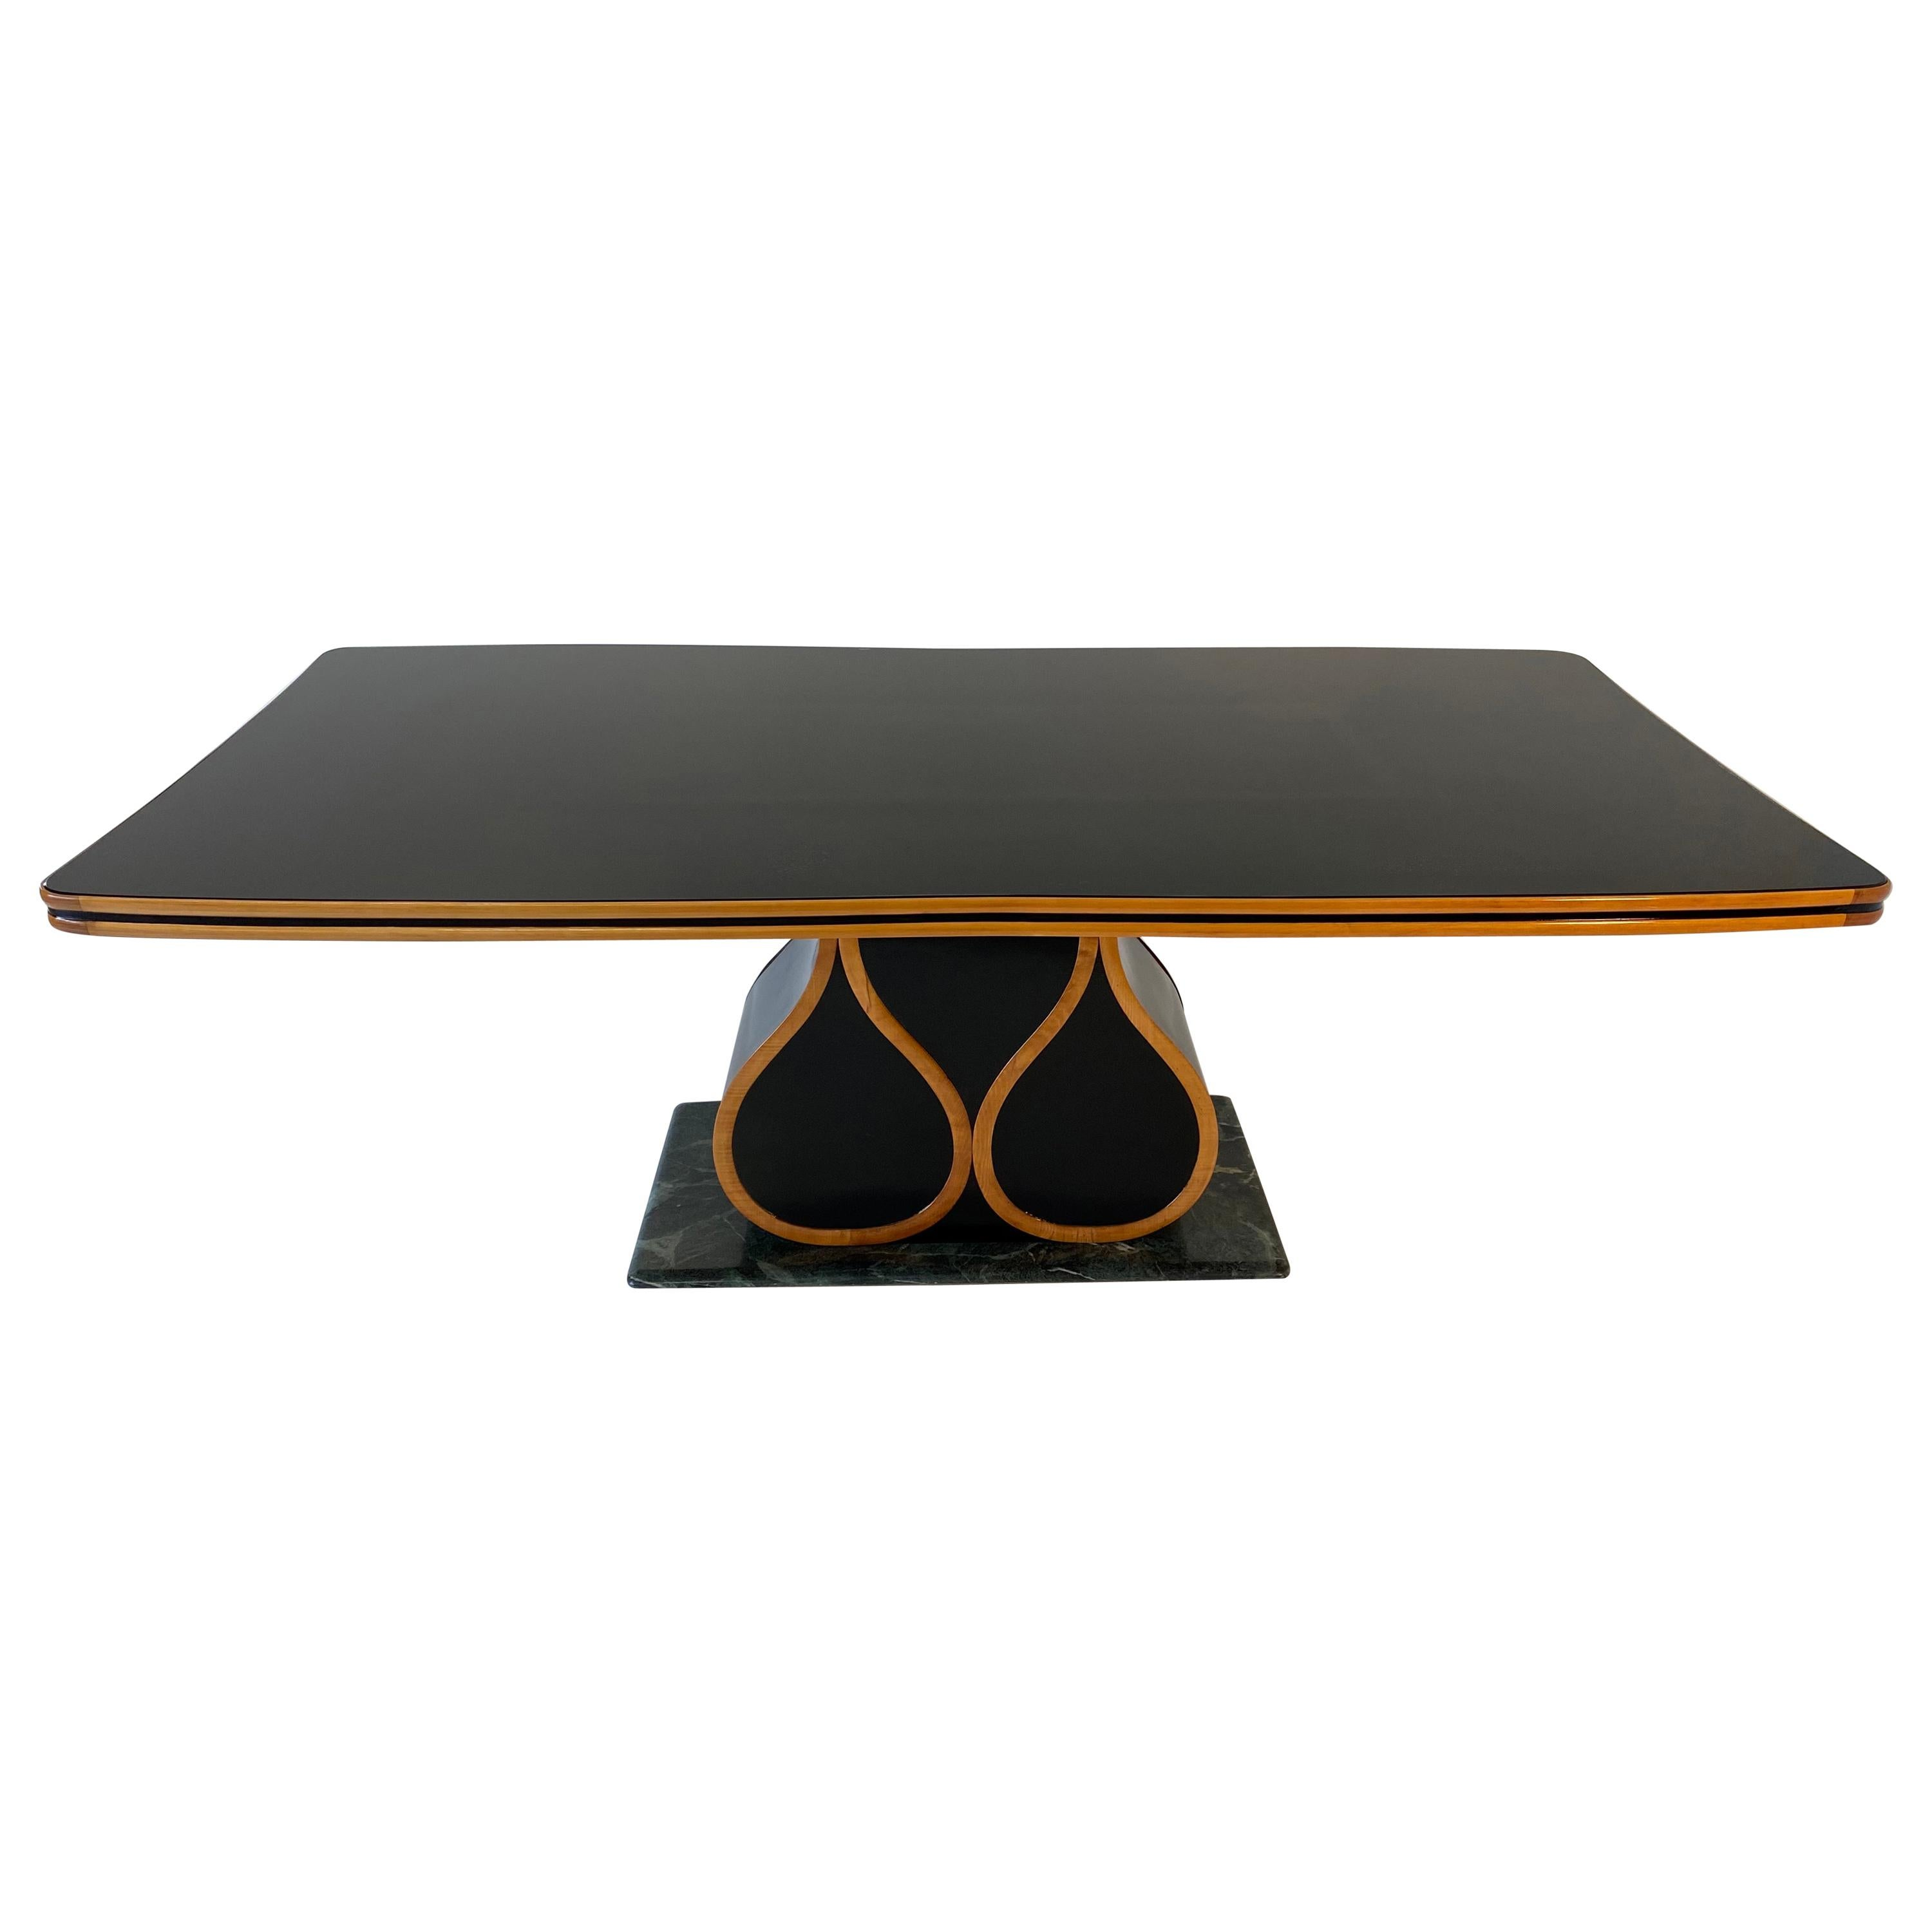 Italian Art Deco Maple and Black Lacquered Dining Table by Vittorio Dassi, 1940s